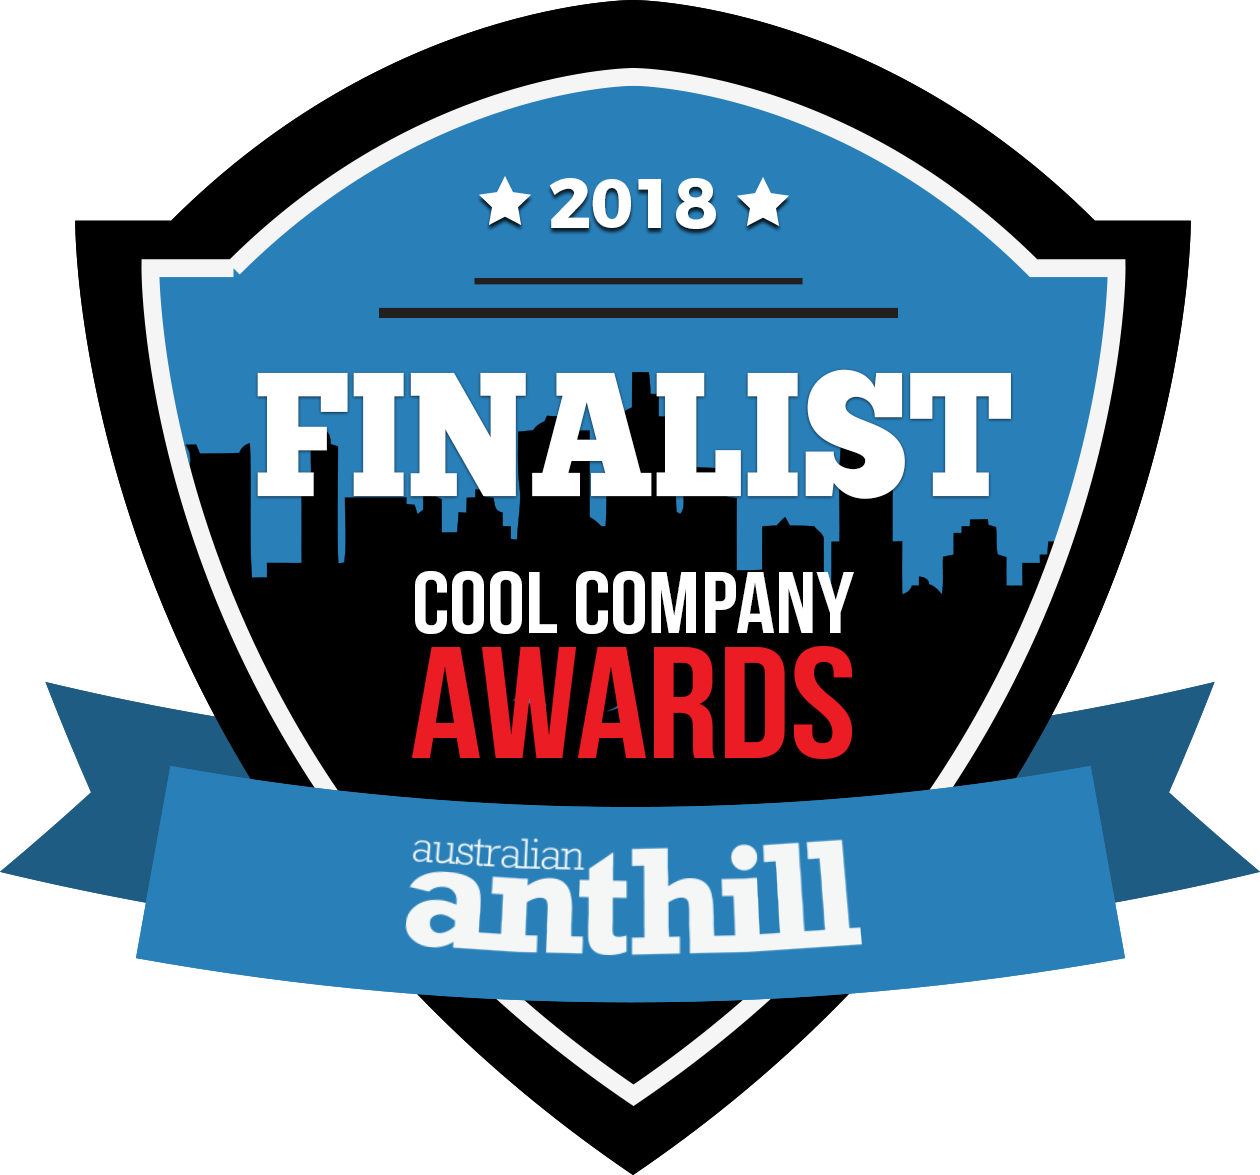 cool company badge - 03 finalist - 2018.png